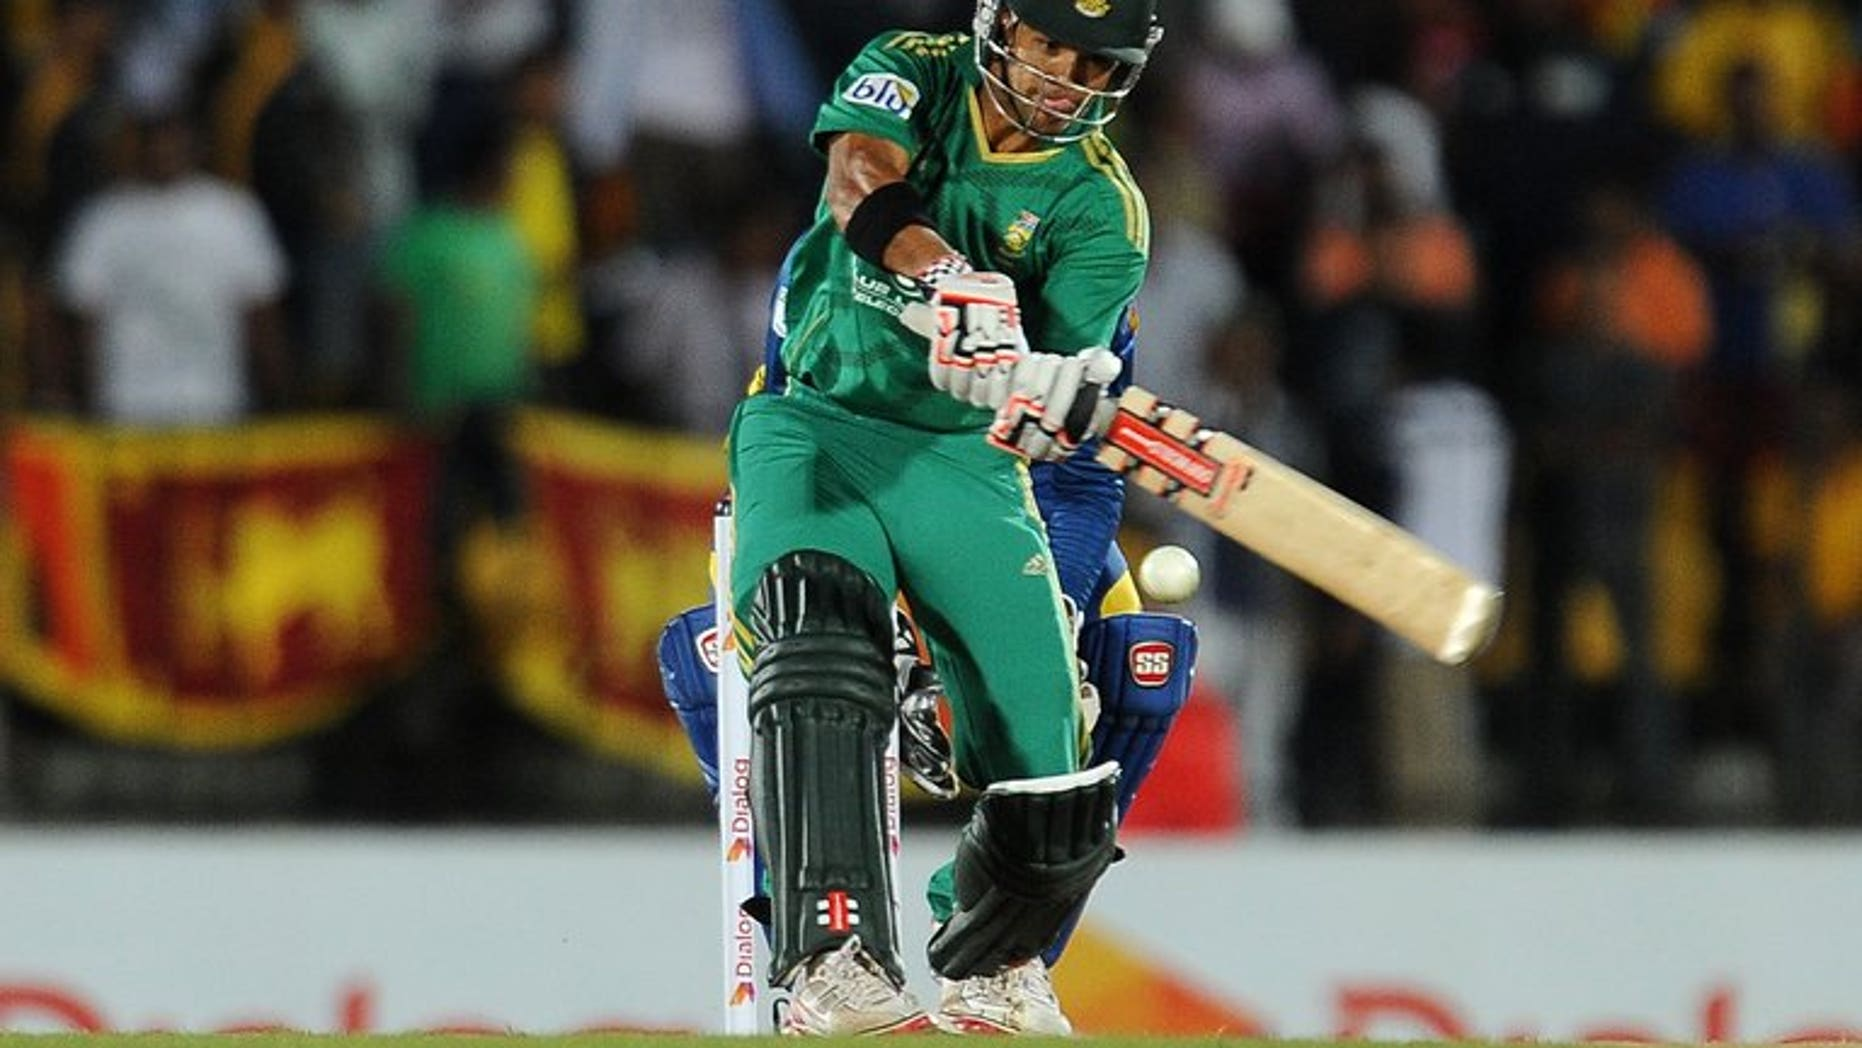 South African batsman JP Duminy plays a shot during the Twenty20 match against Sri Lanka in the district of Hambantota on August 4,2013. South Africa's captain Faf du Plessis won the toss and chose to bat in windy conditions in the second Twenty20 international against Sri Lanka in Hambantota